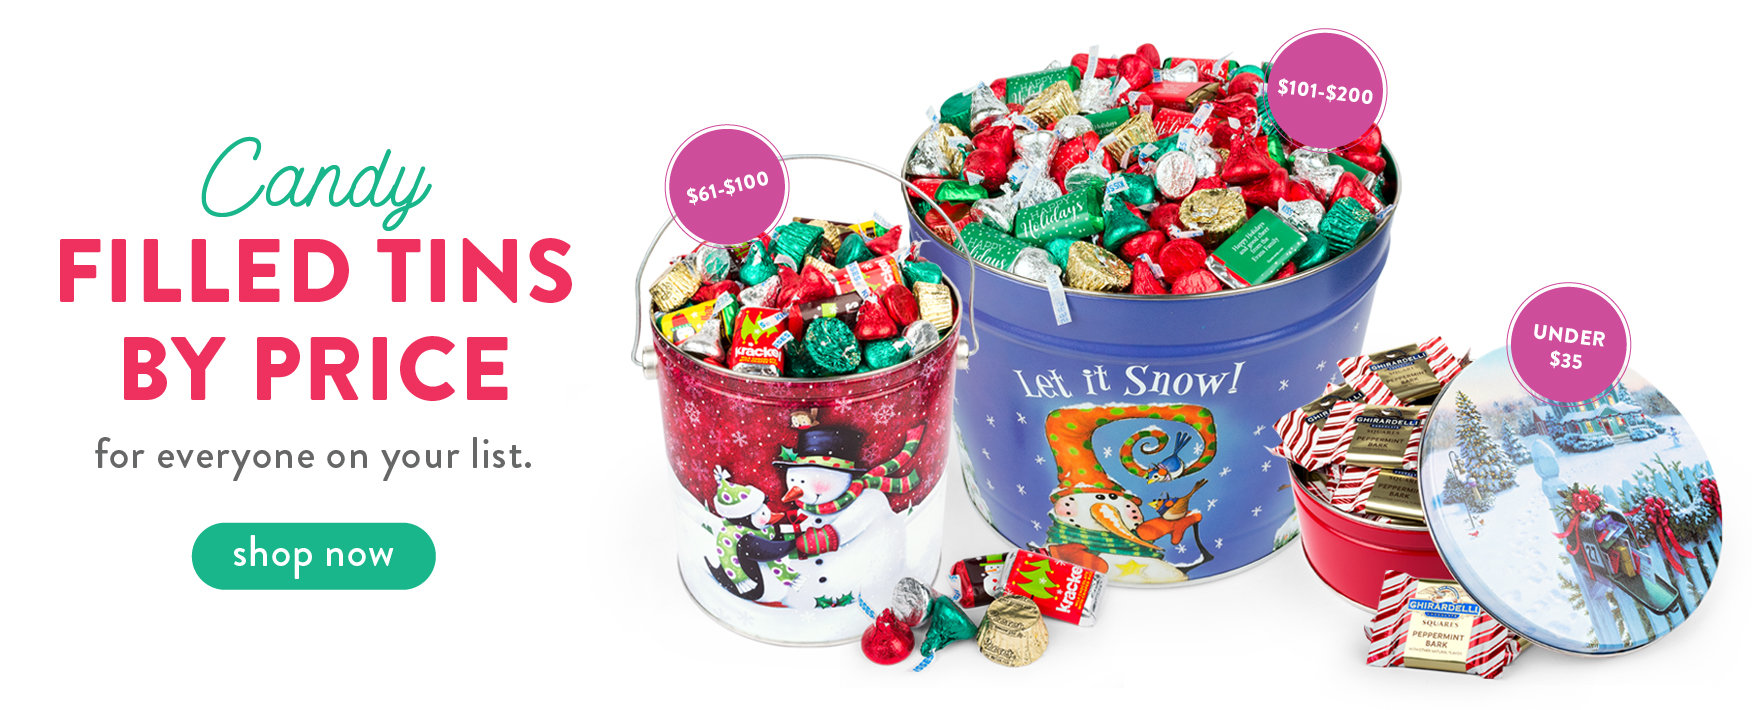 Candy Filled Tins by Price